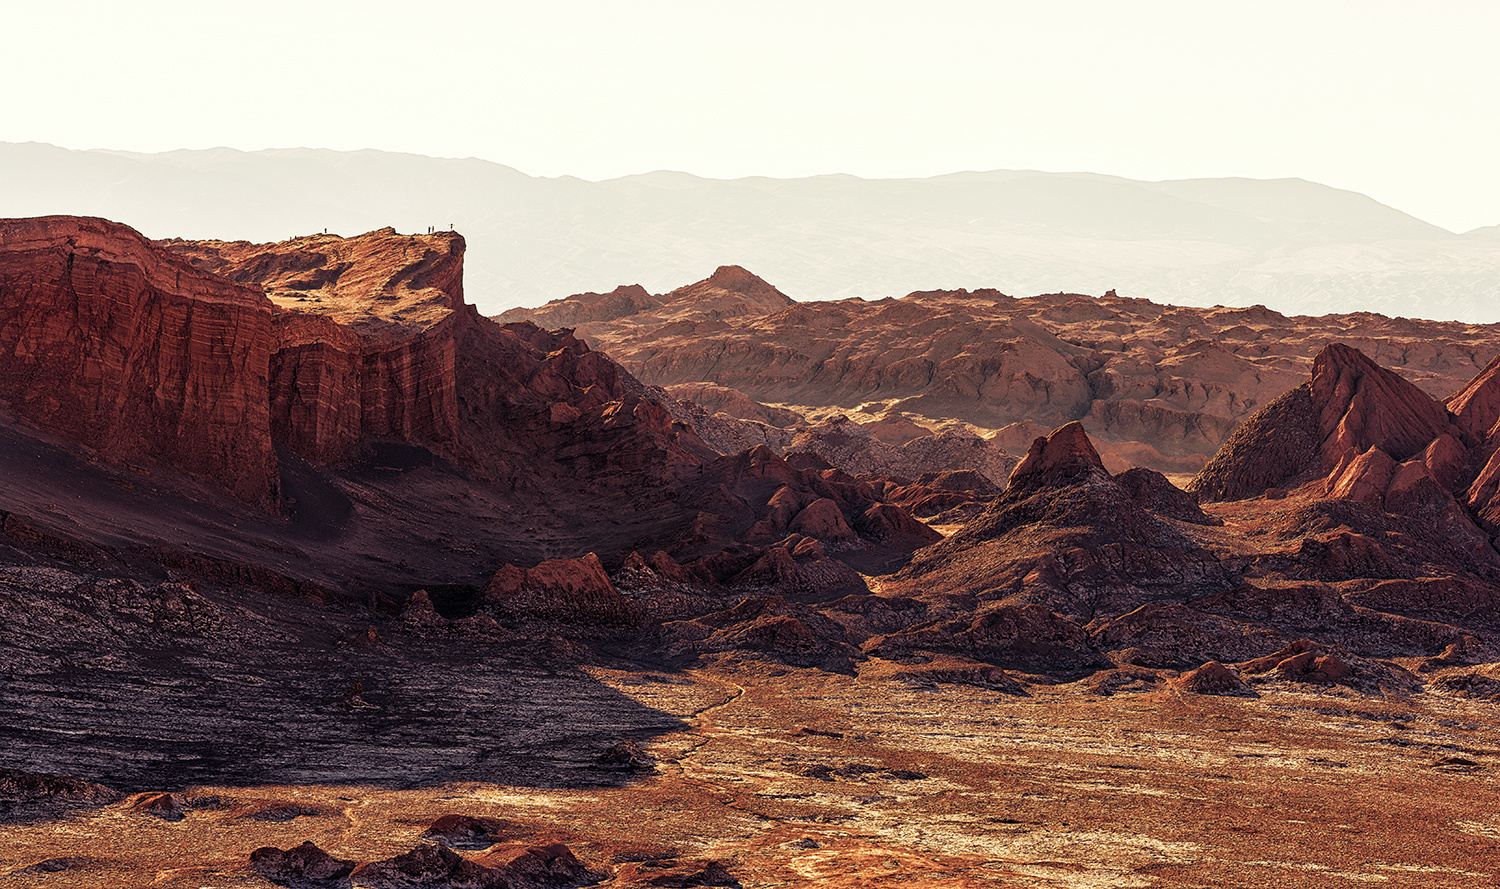 Moon Valley, San Pedro de Atacama by Ricardo Chávez